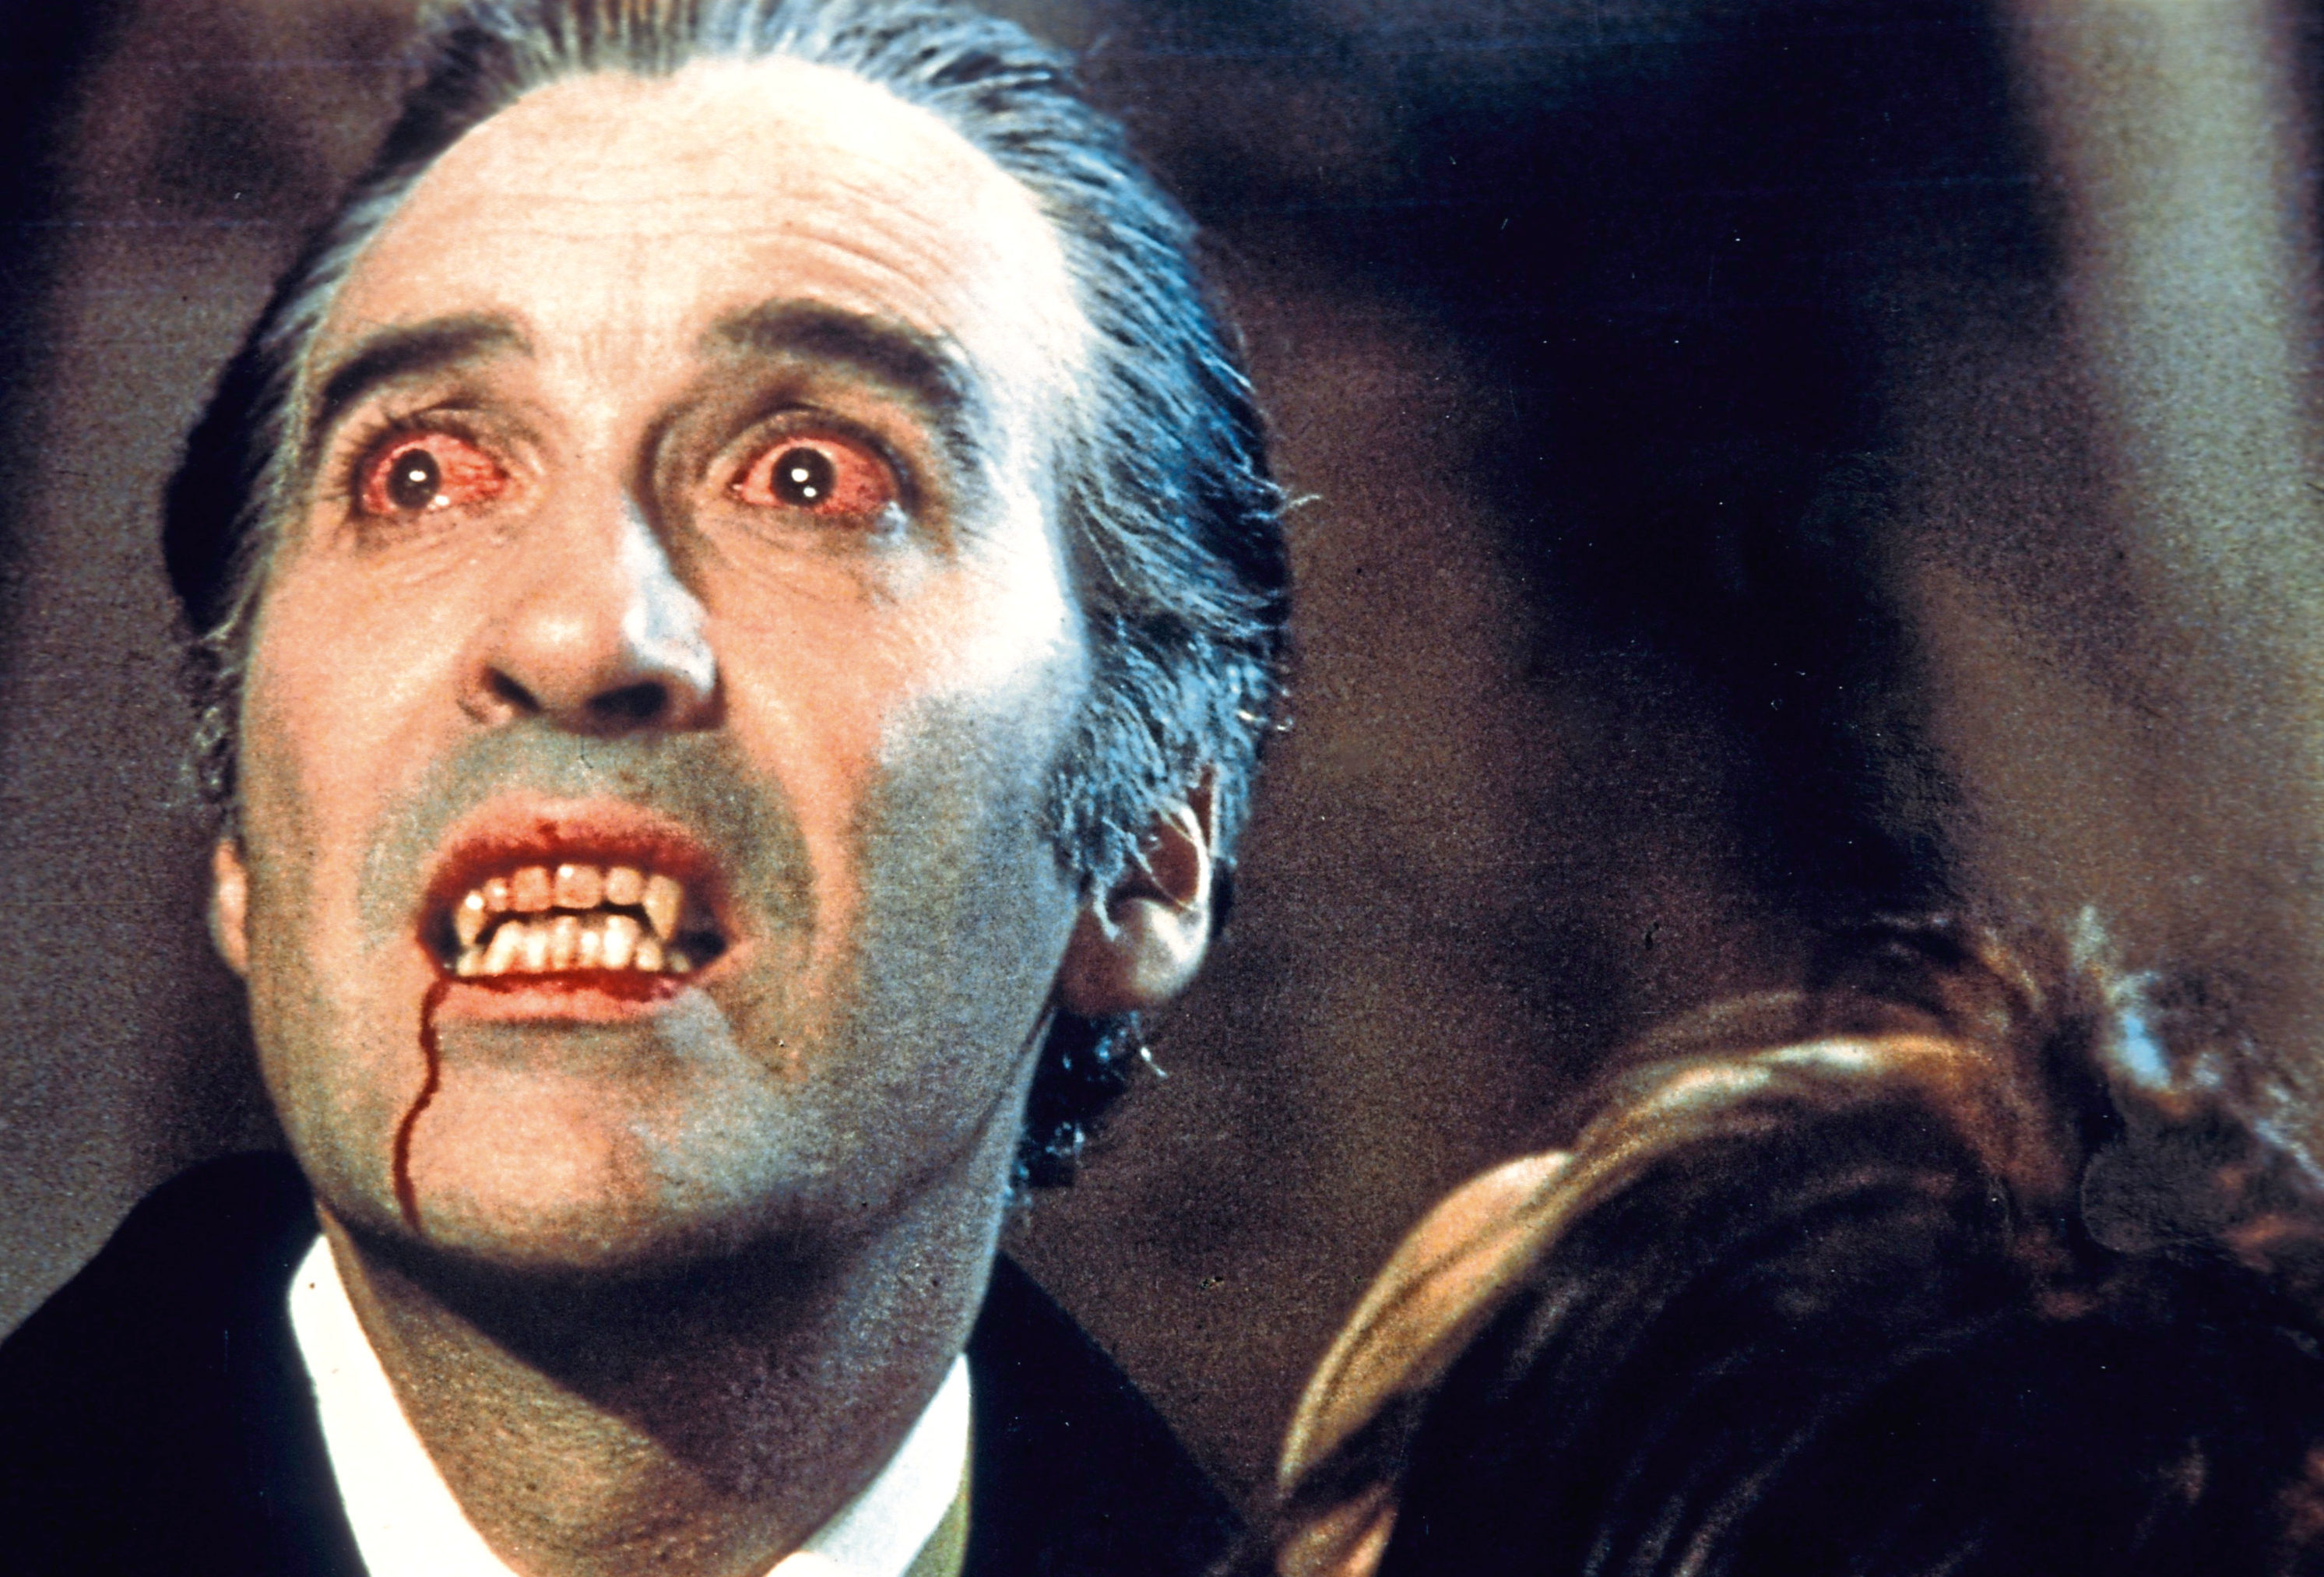 Christopher Lee as Dracula, 1958 (Allstar / HAMMER FILM )